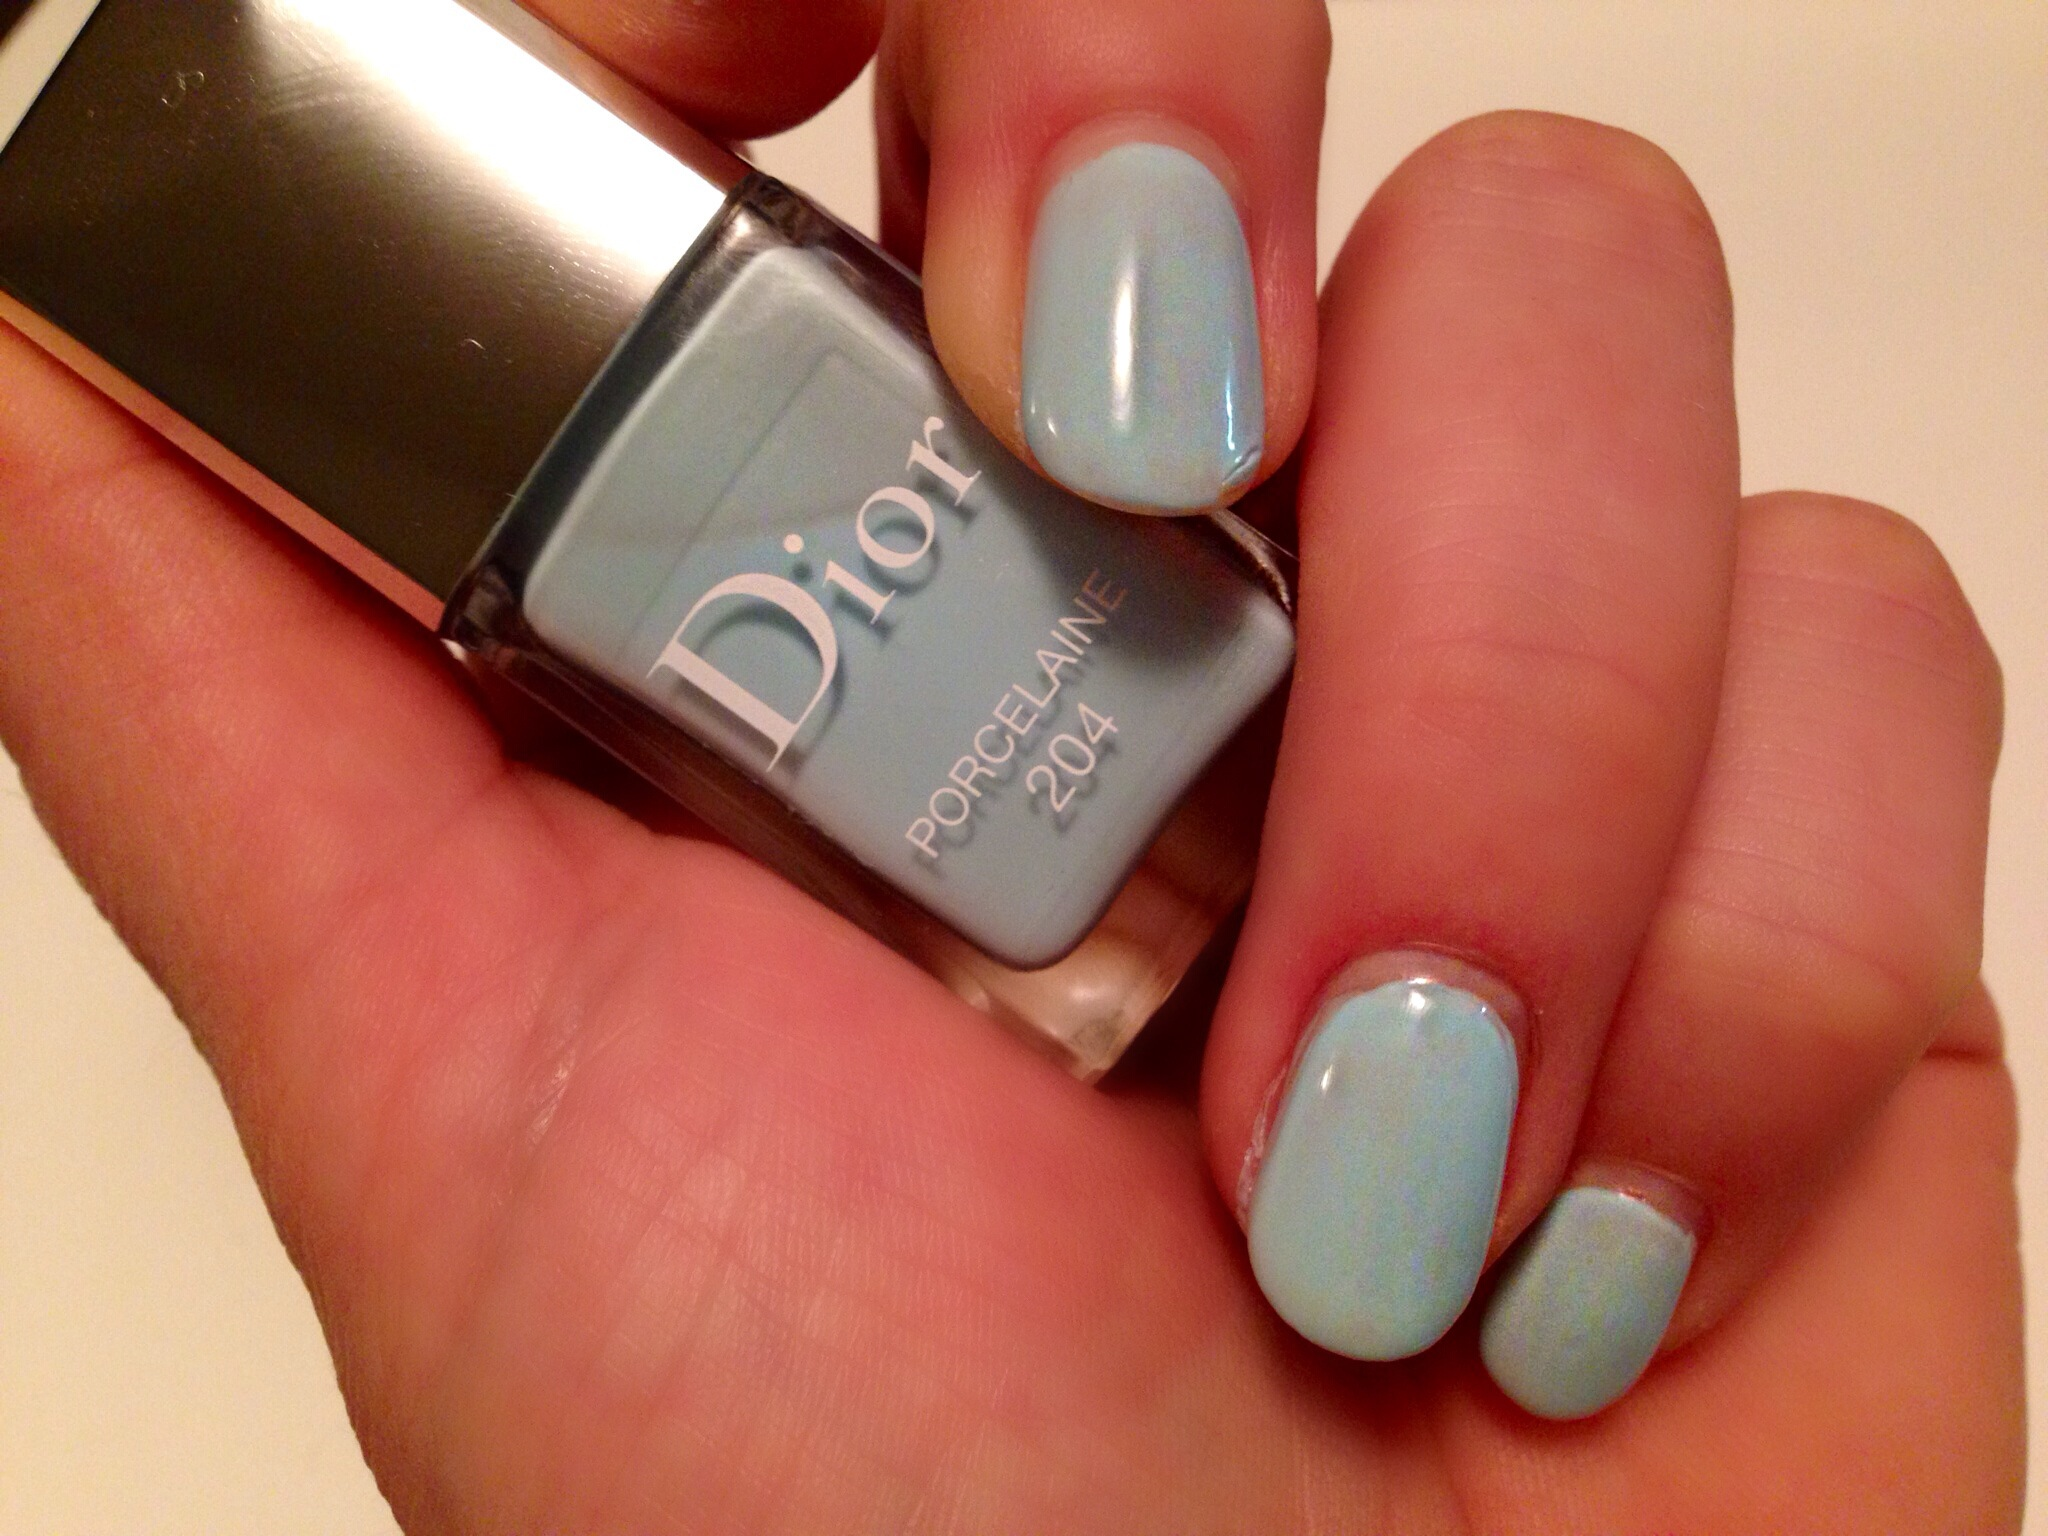 Dior Vernis Porcelaine 204 Nagellack- Trianon Collection Spring 2014 ...